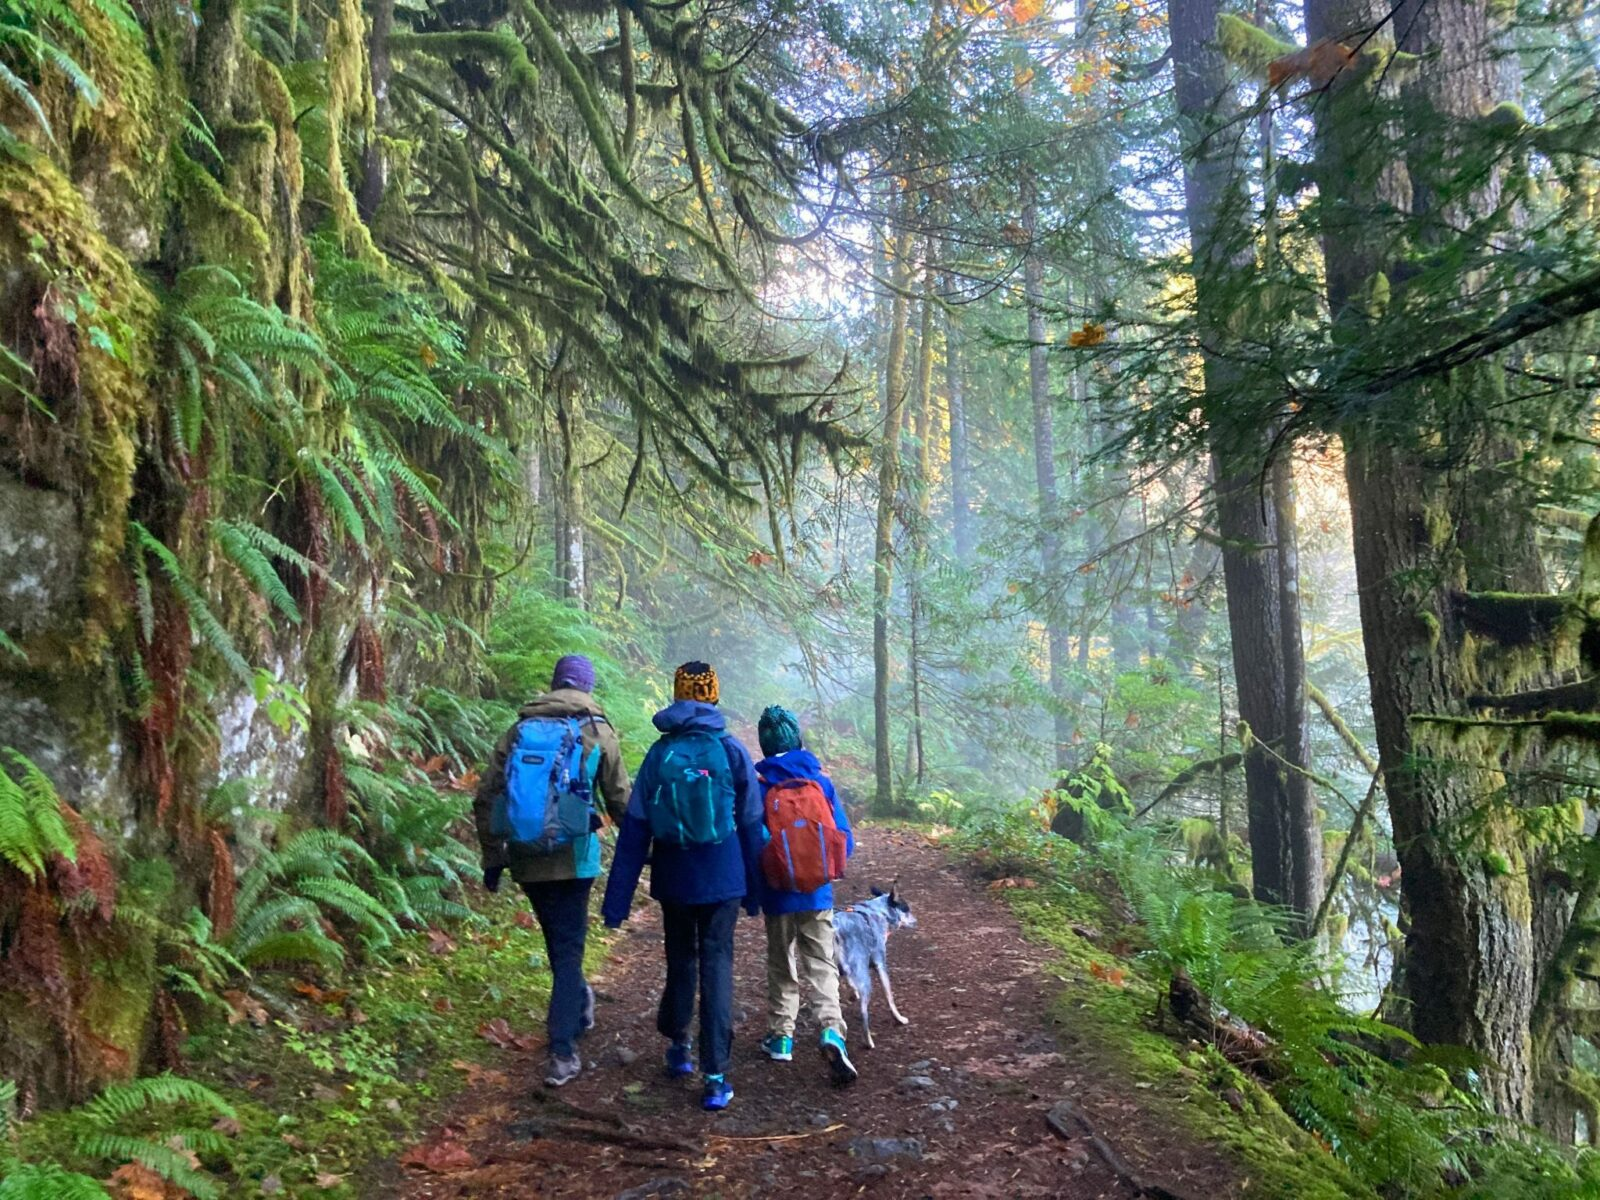 three hikers and a dog on the Boulder River trail. At this point the trail is wide enough for three people to walk next to each other. The trail is surrounded by evergreen trees and ferns and moss